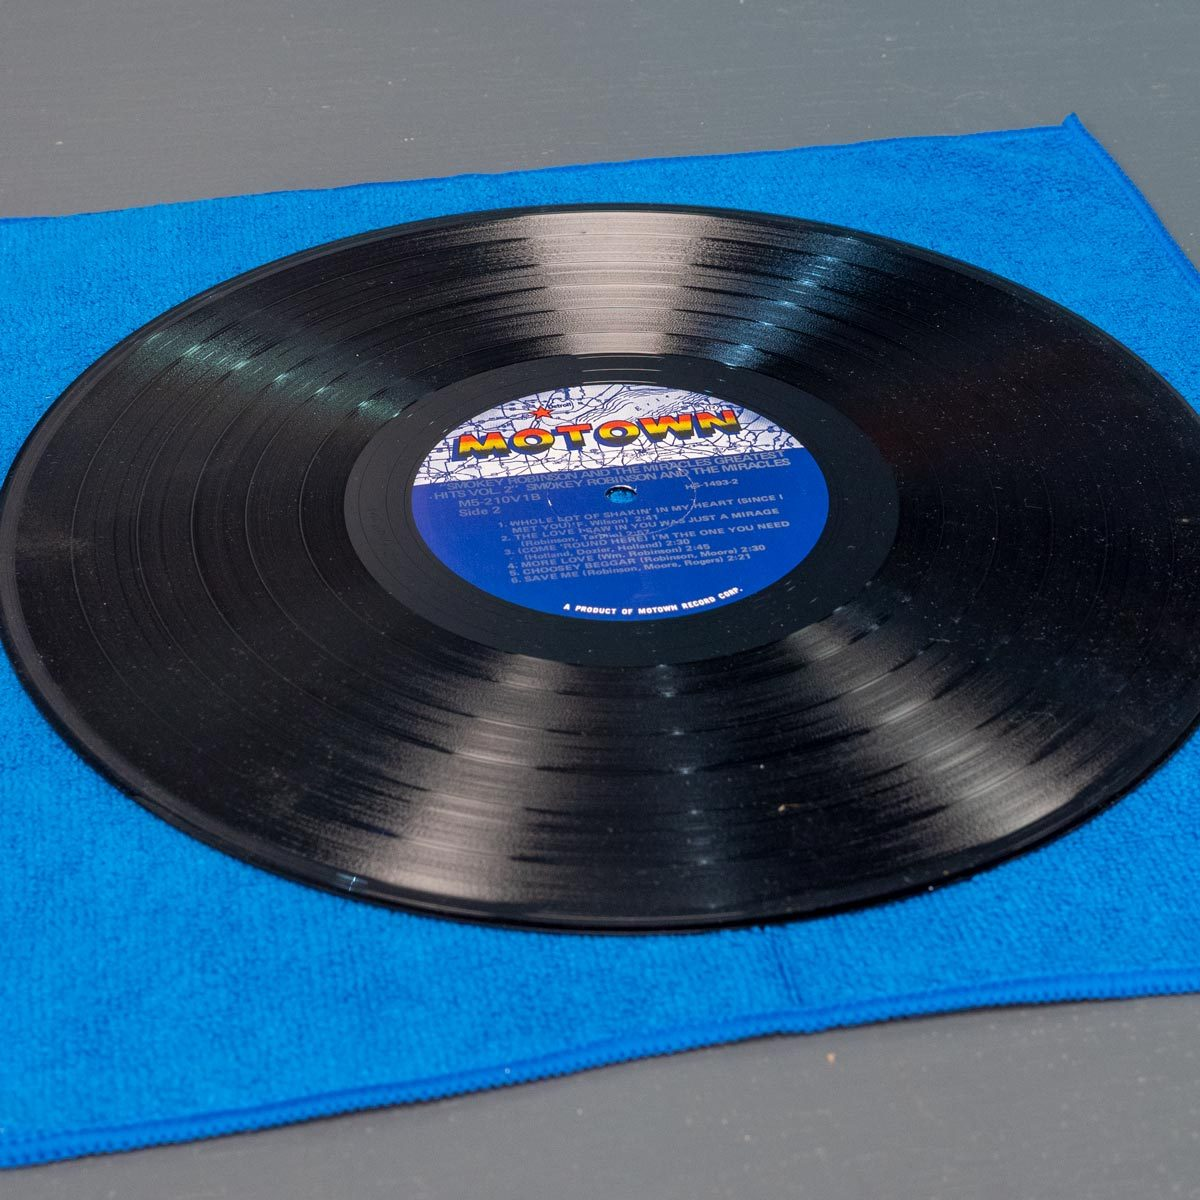 clean record on microfiber cloth